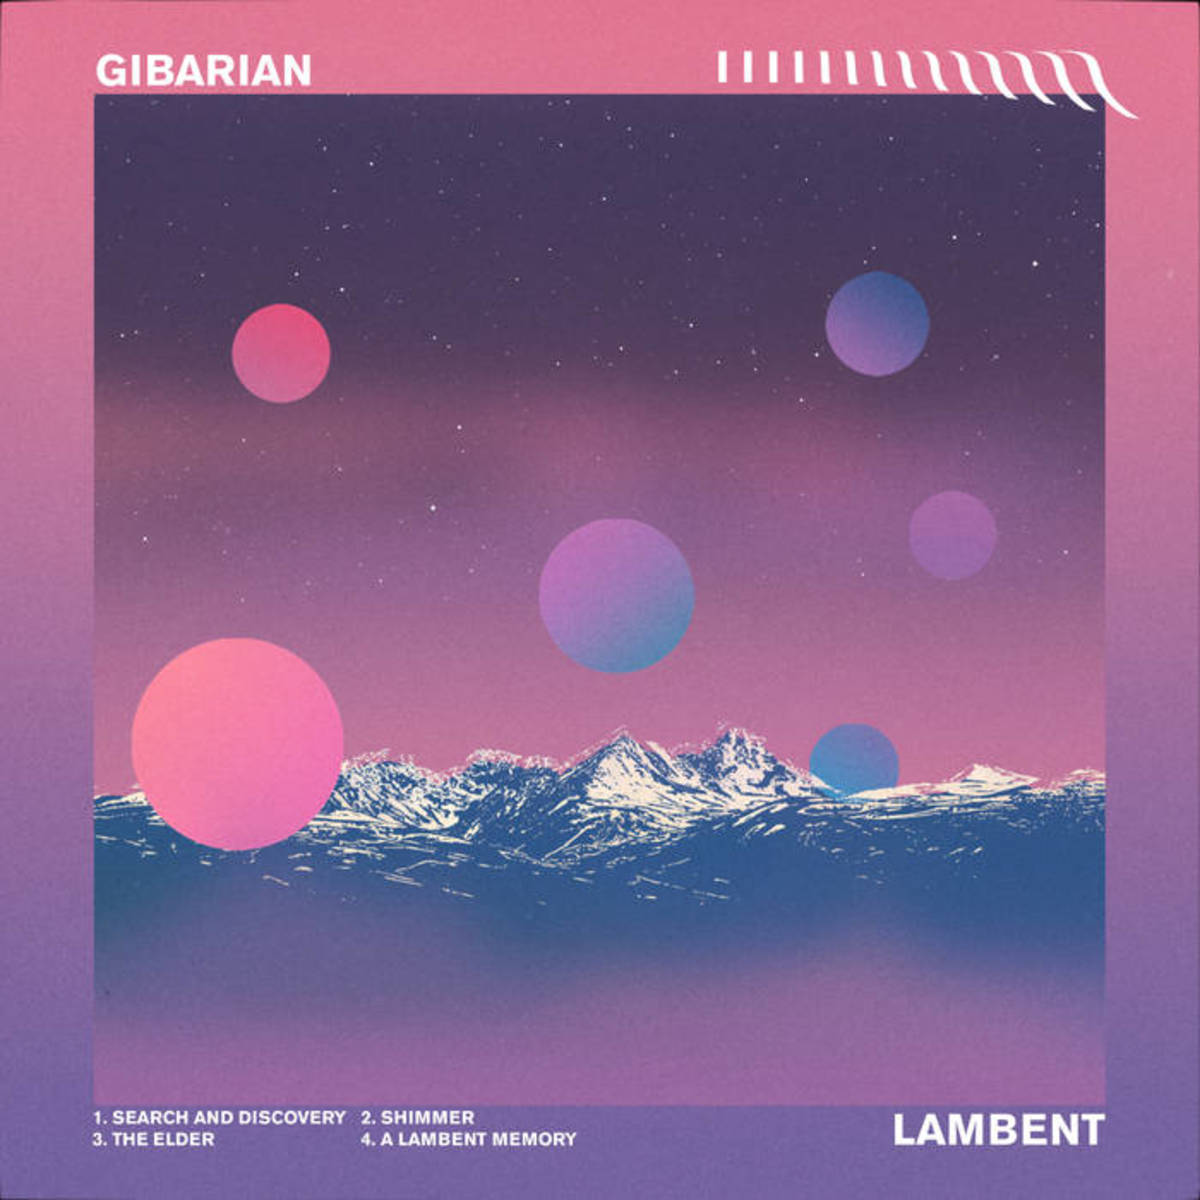 synth-ep-review-gibarian-lambent